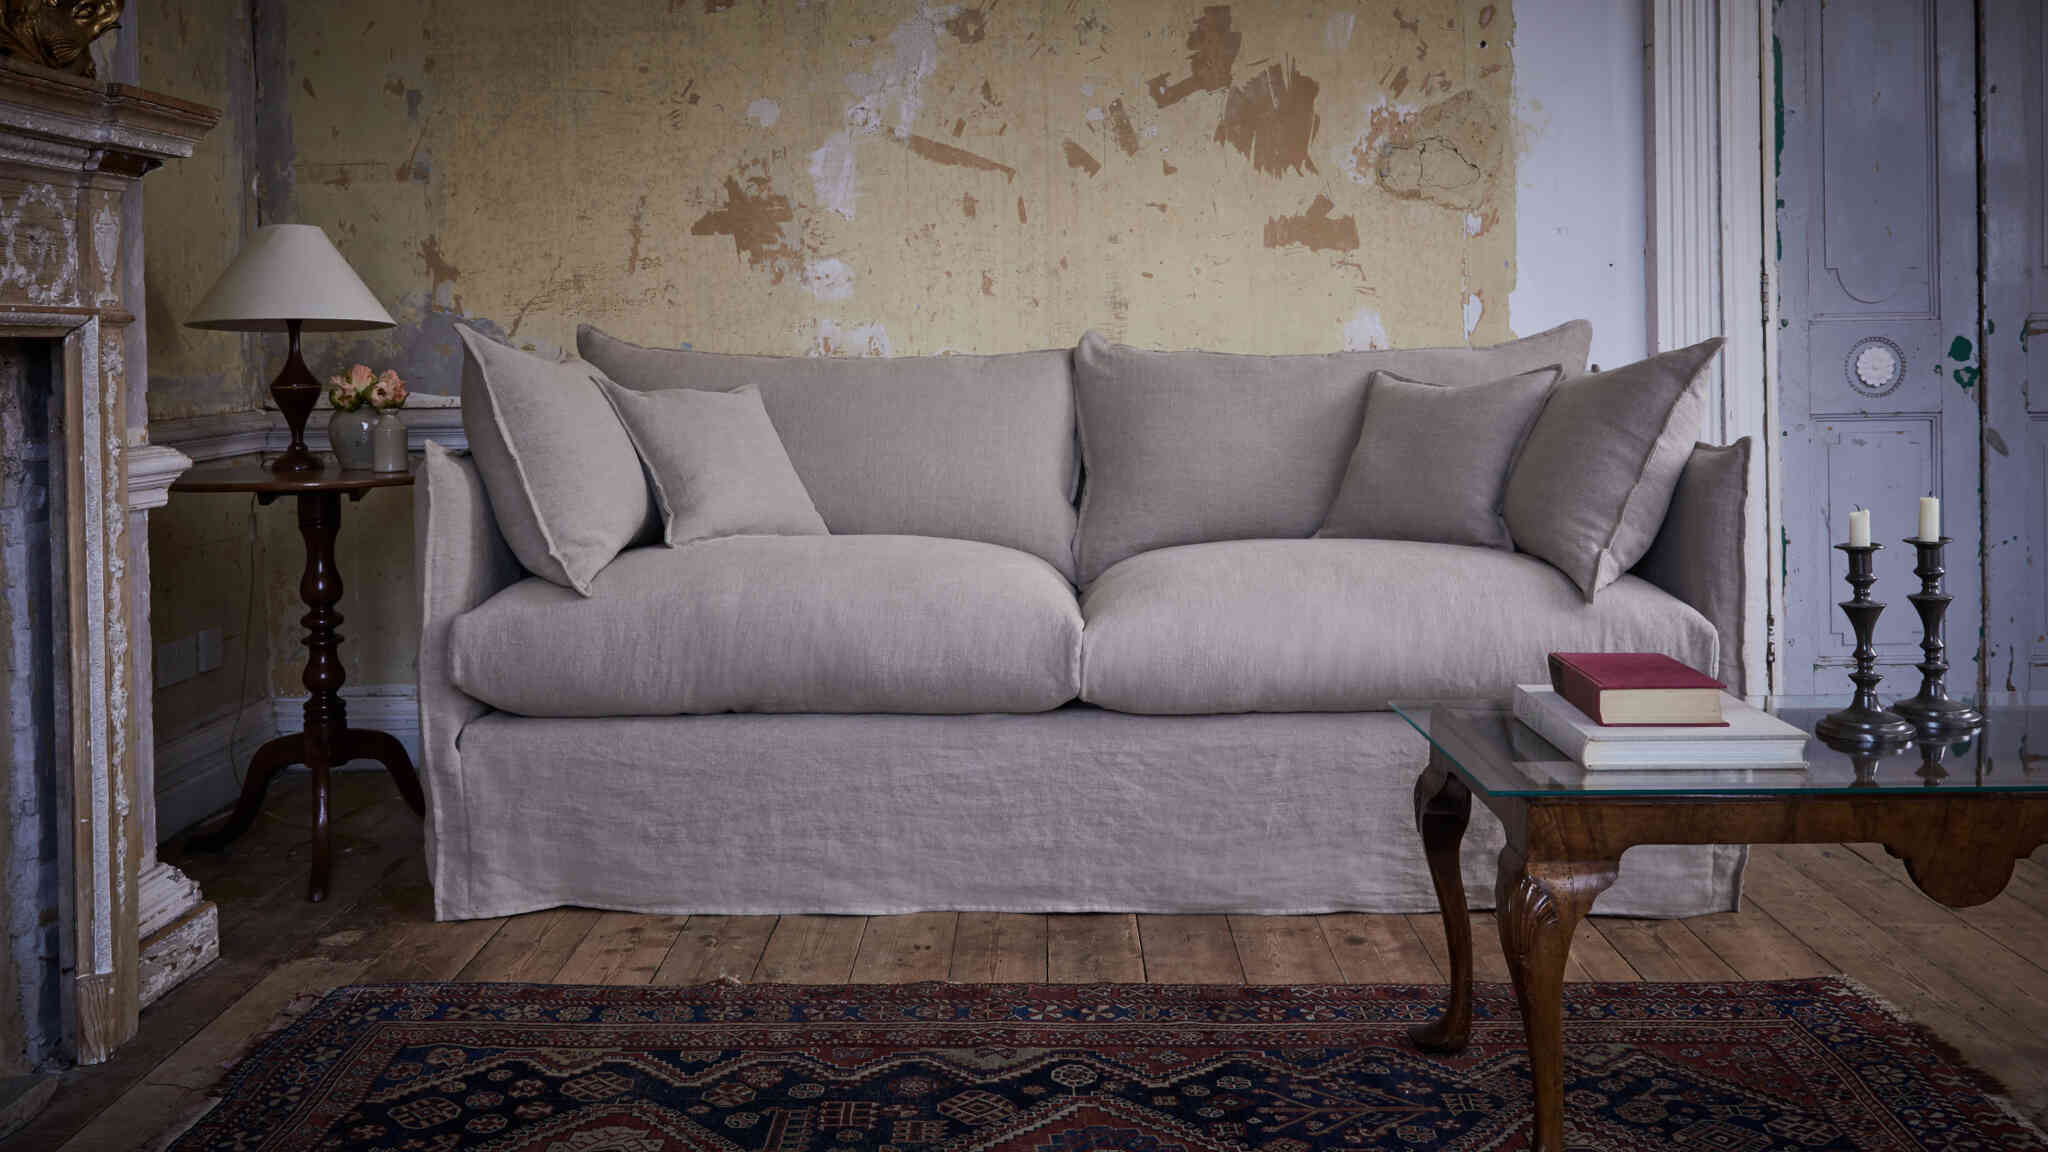 Know How: How to care for linen upholstery